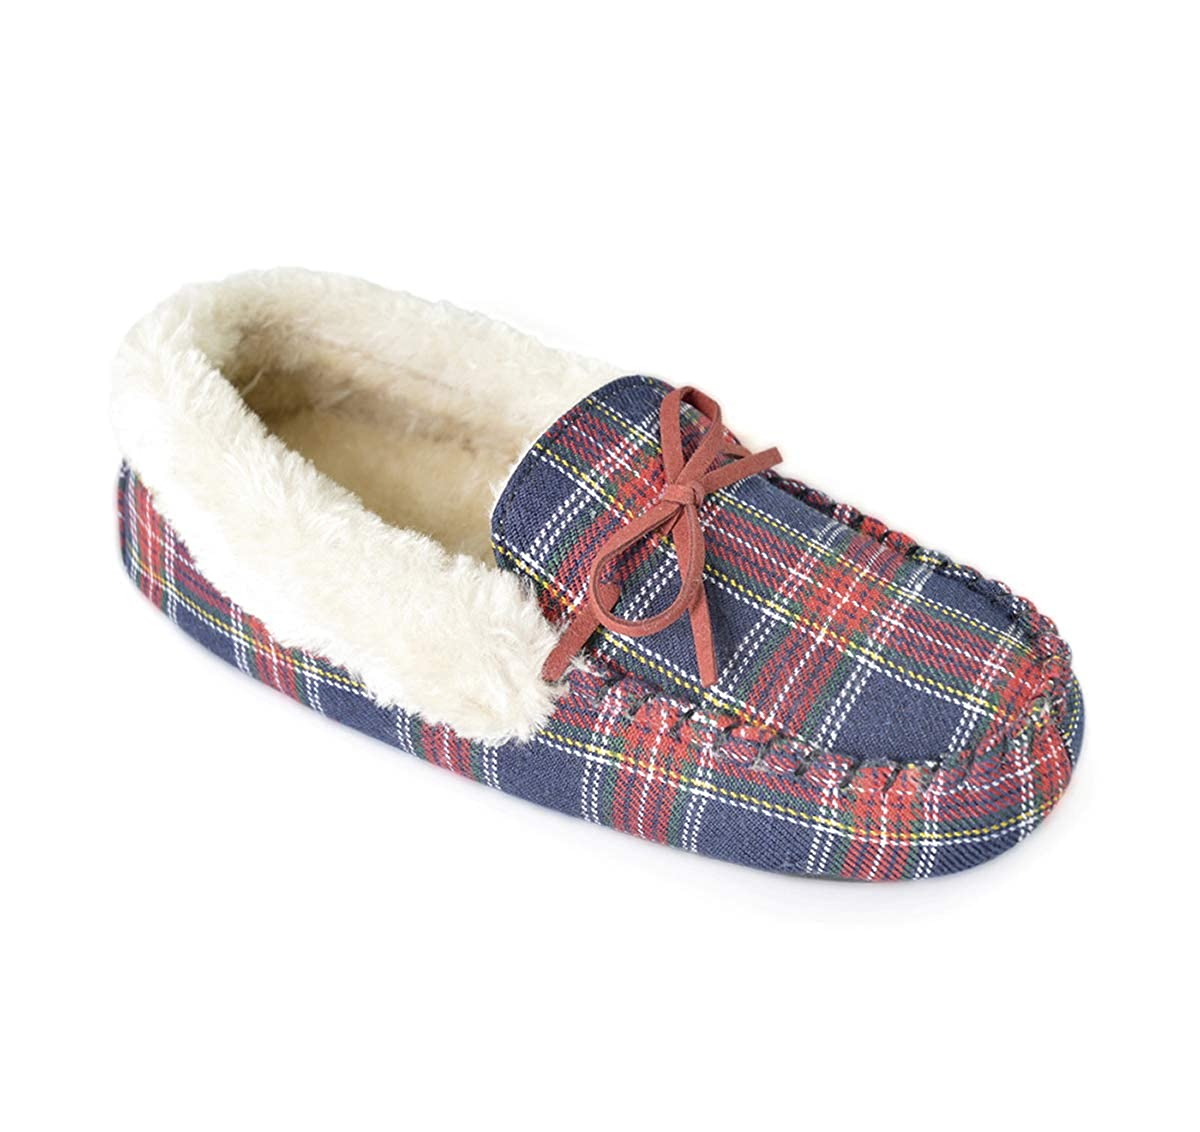 Womens Moccasin Style Real Leather Slippers Tartan Inner Sizes 3-8